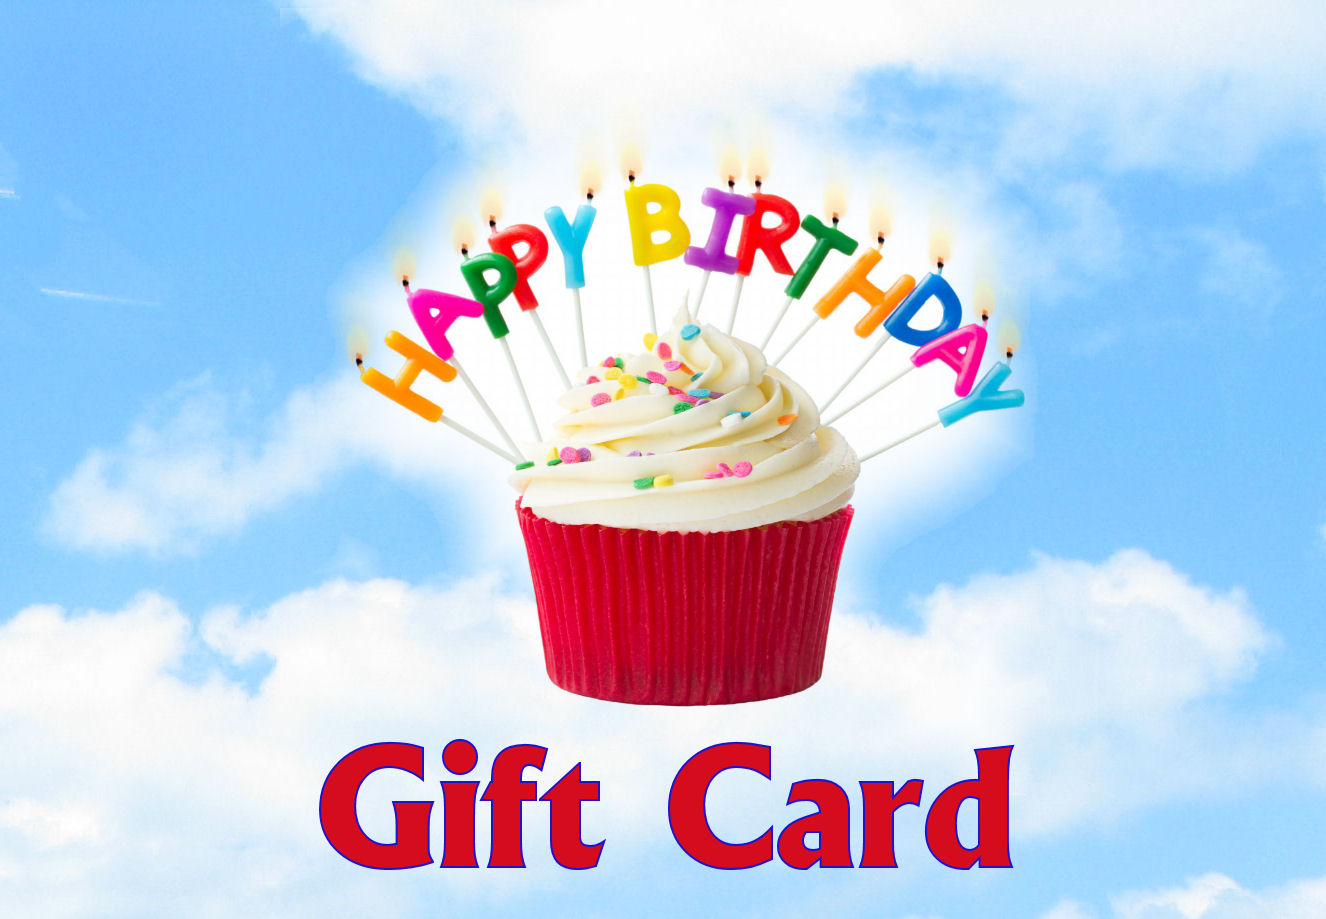 happy birthday digital gift card blue sky in background a red and white cupcake with colorful candles that spell out - Happy Birthday Gift Card